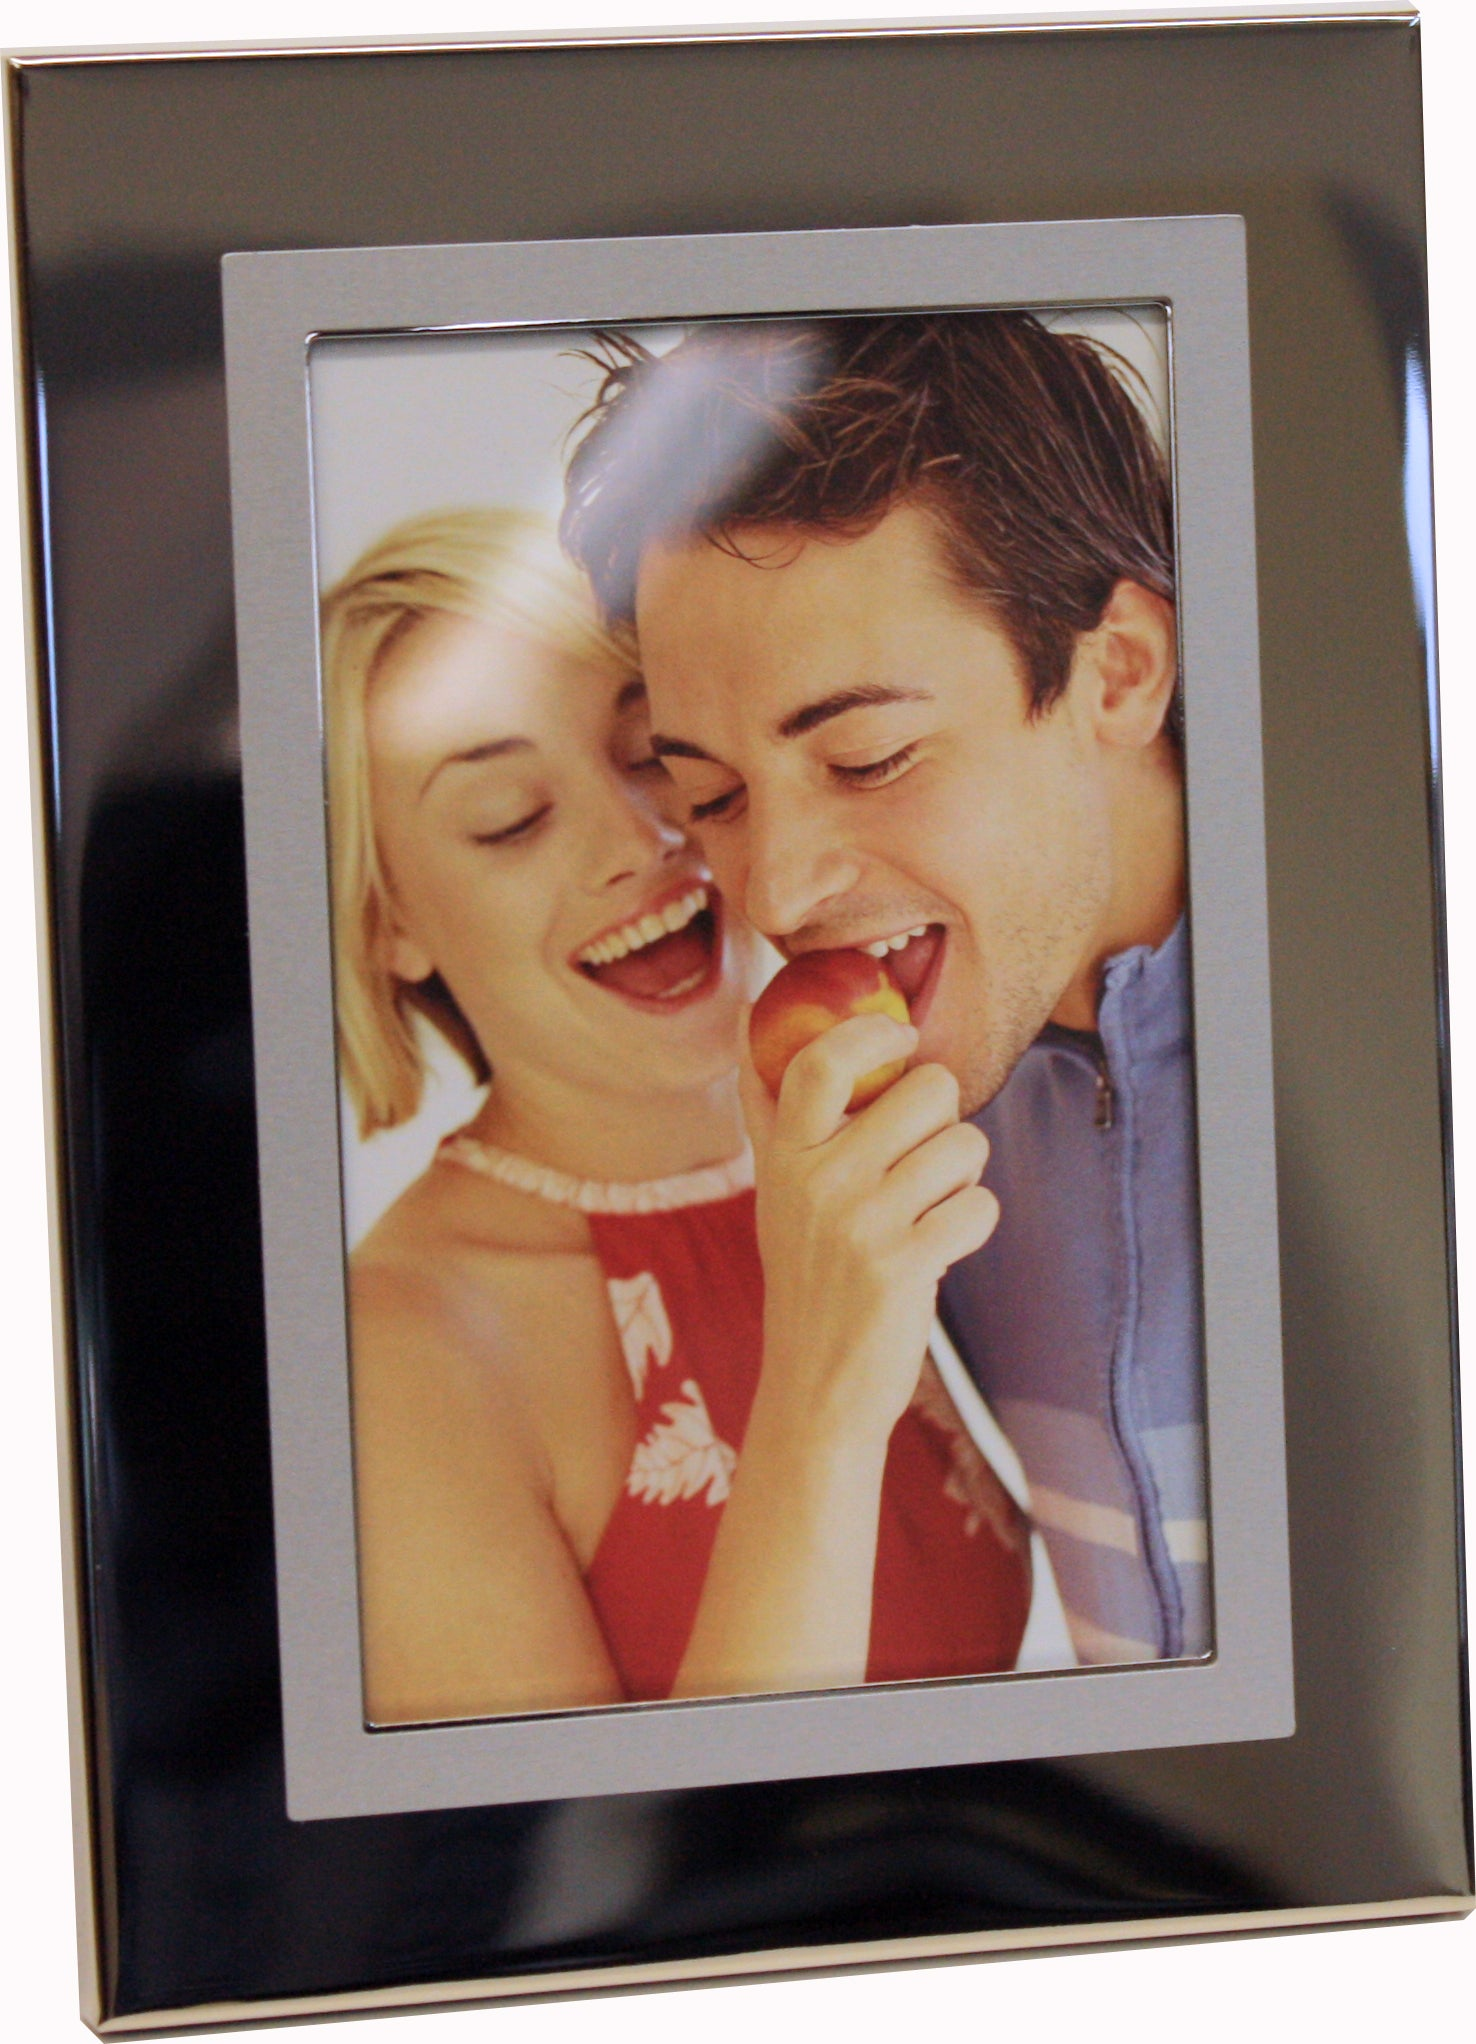 4x6 Nickel Plated Photo Frame with inside Satin Finish Border